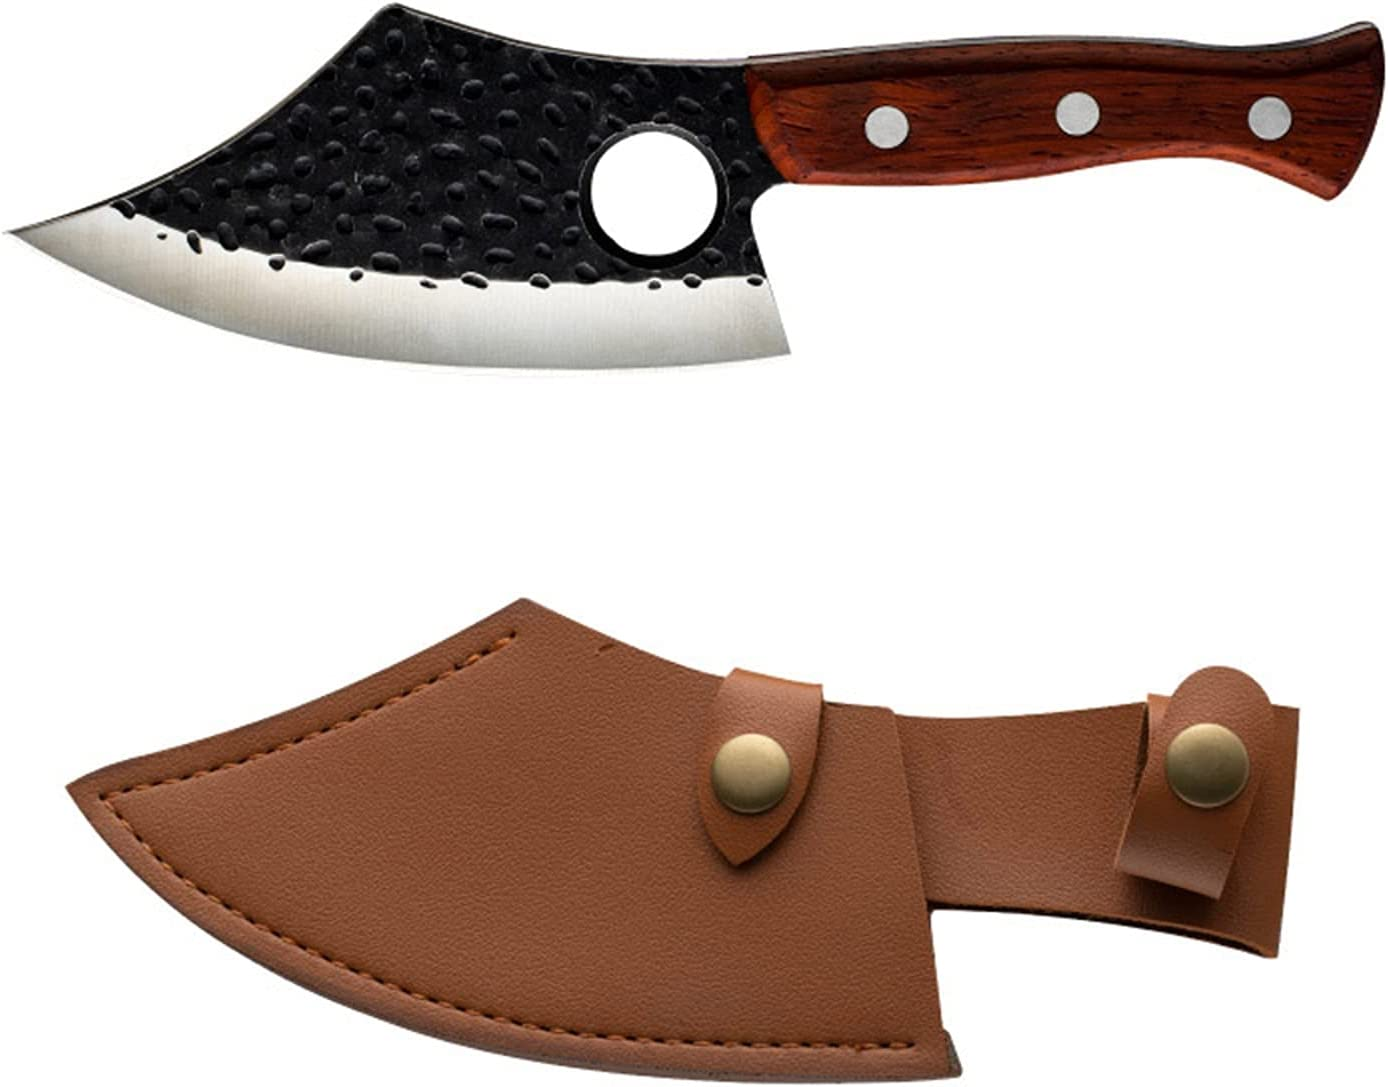 Sharp Fees free Handmade Long-awaited Forged Clad Steel Forg Kitchen Knifes Chef Boning